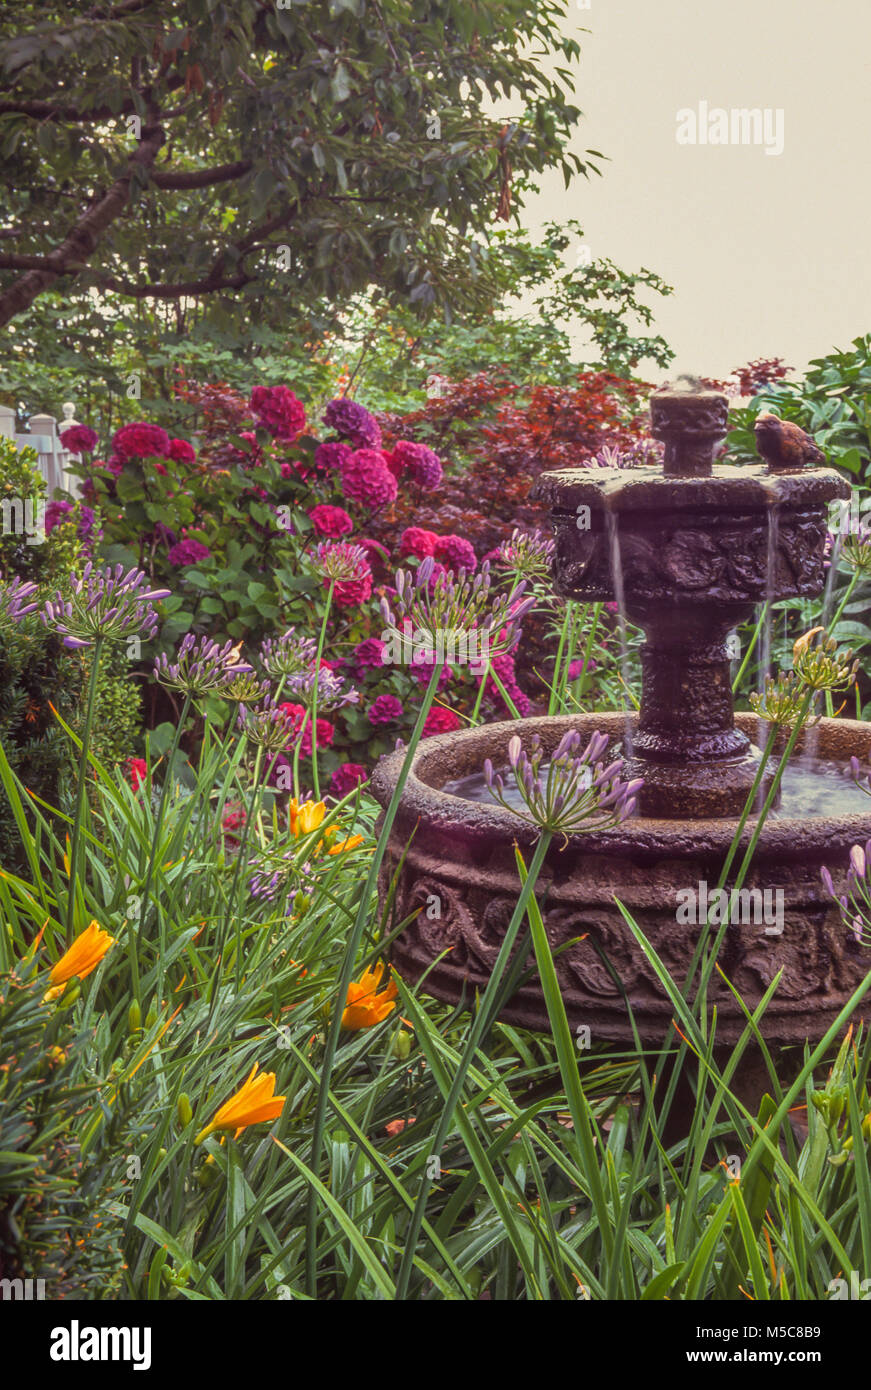 Tiered Fountain in Garden setting - Stock Image